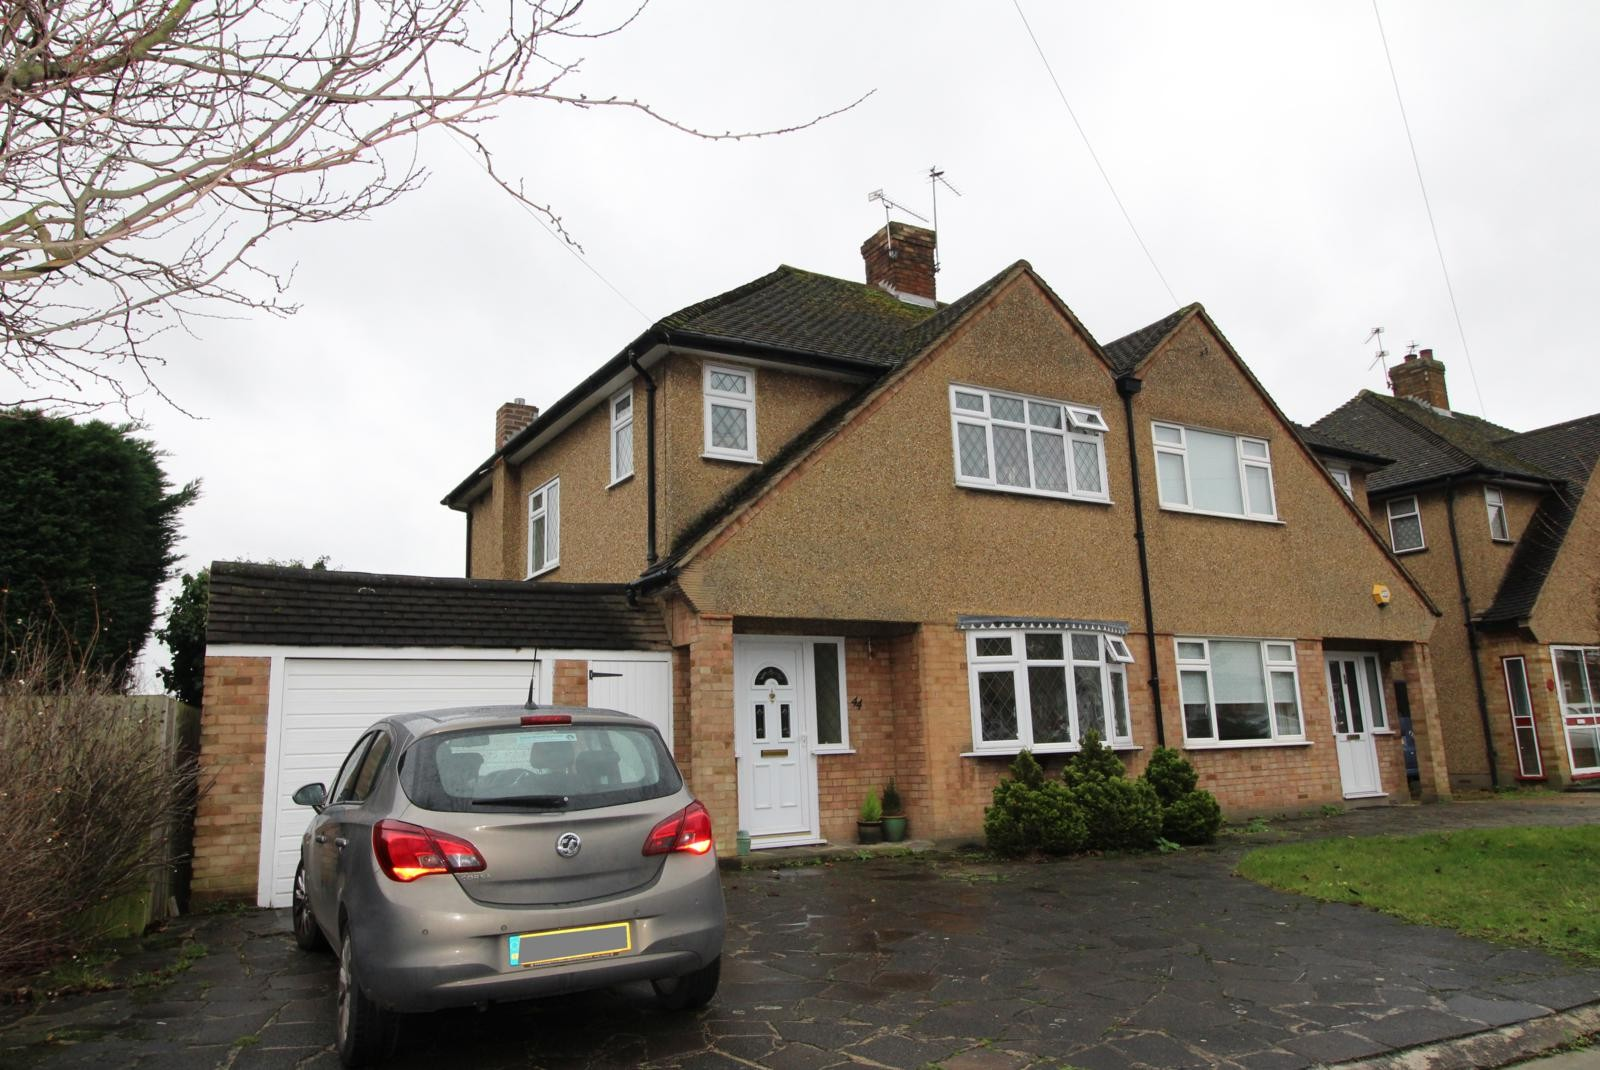 Trent Avenue, Upminster, Essex, RM14